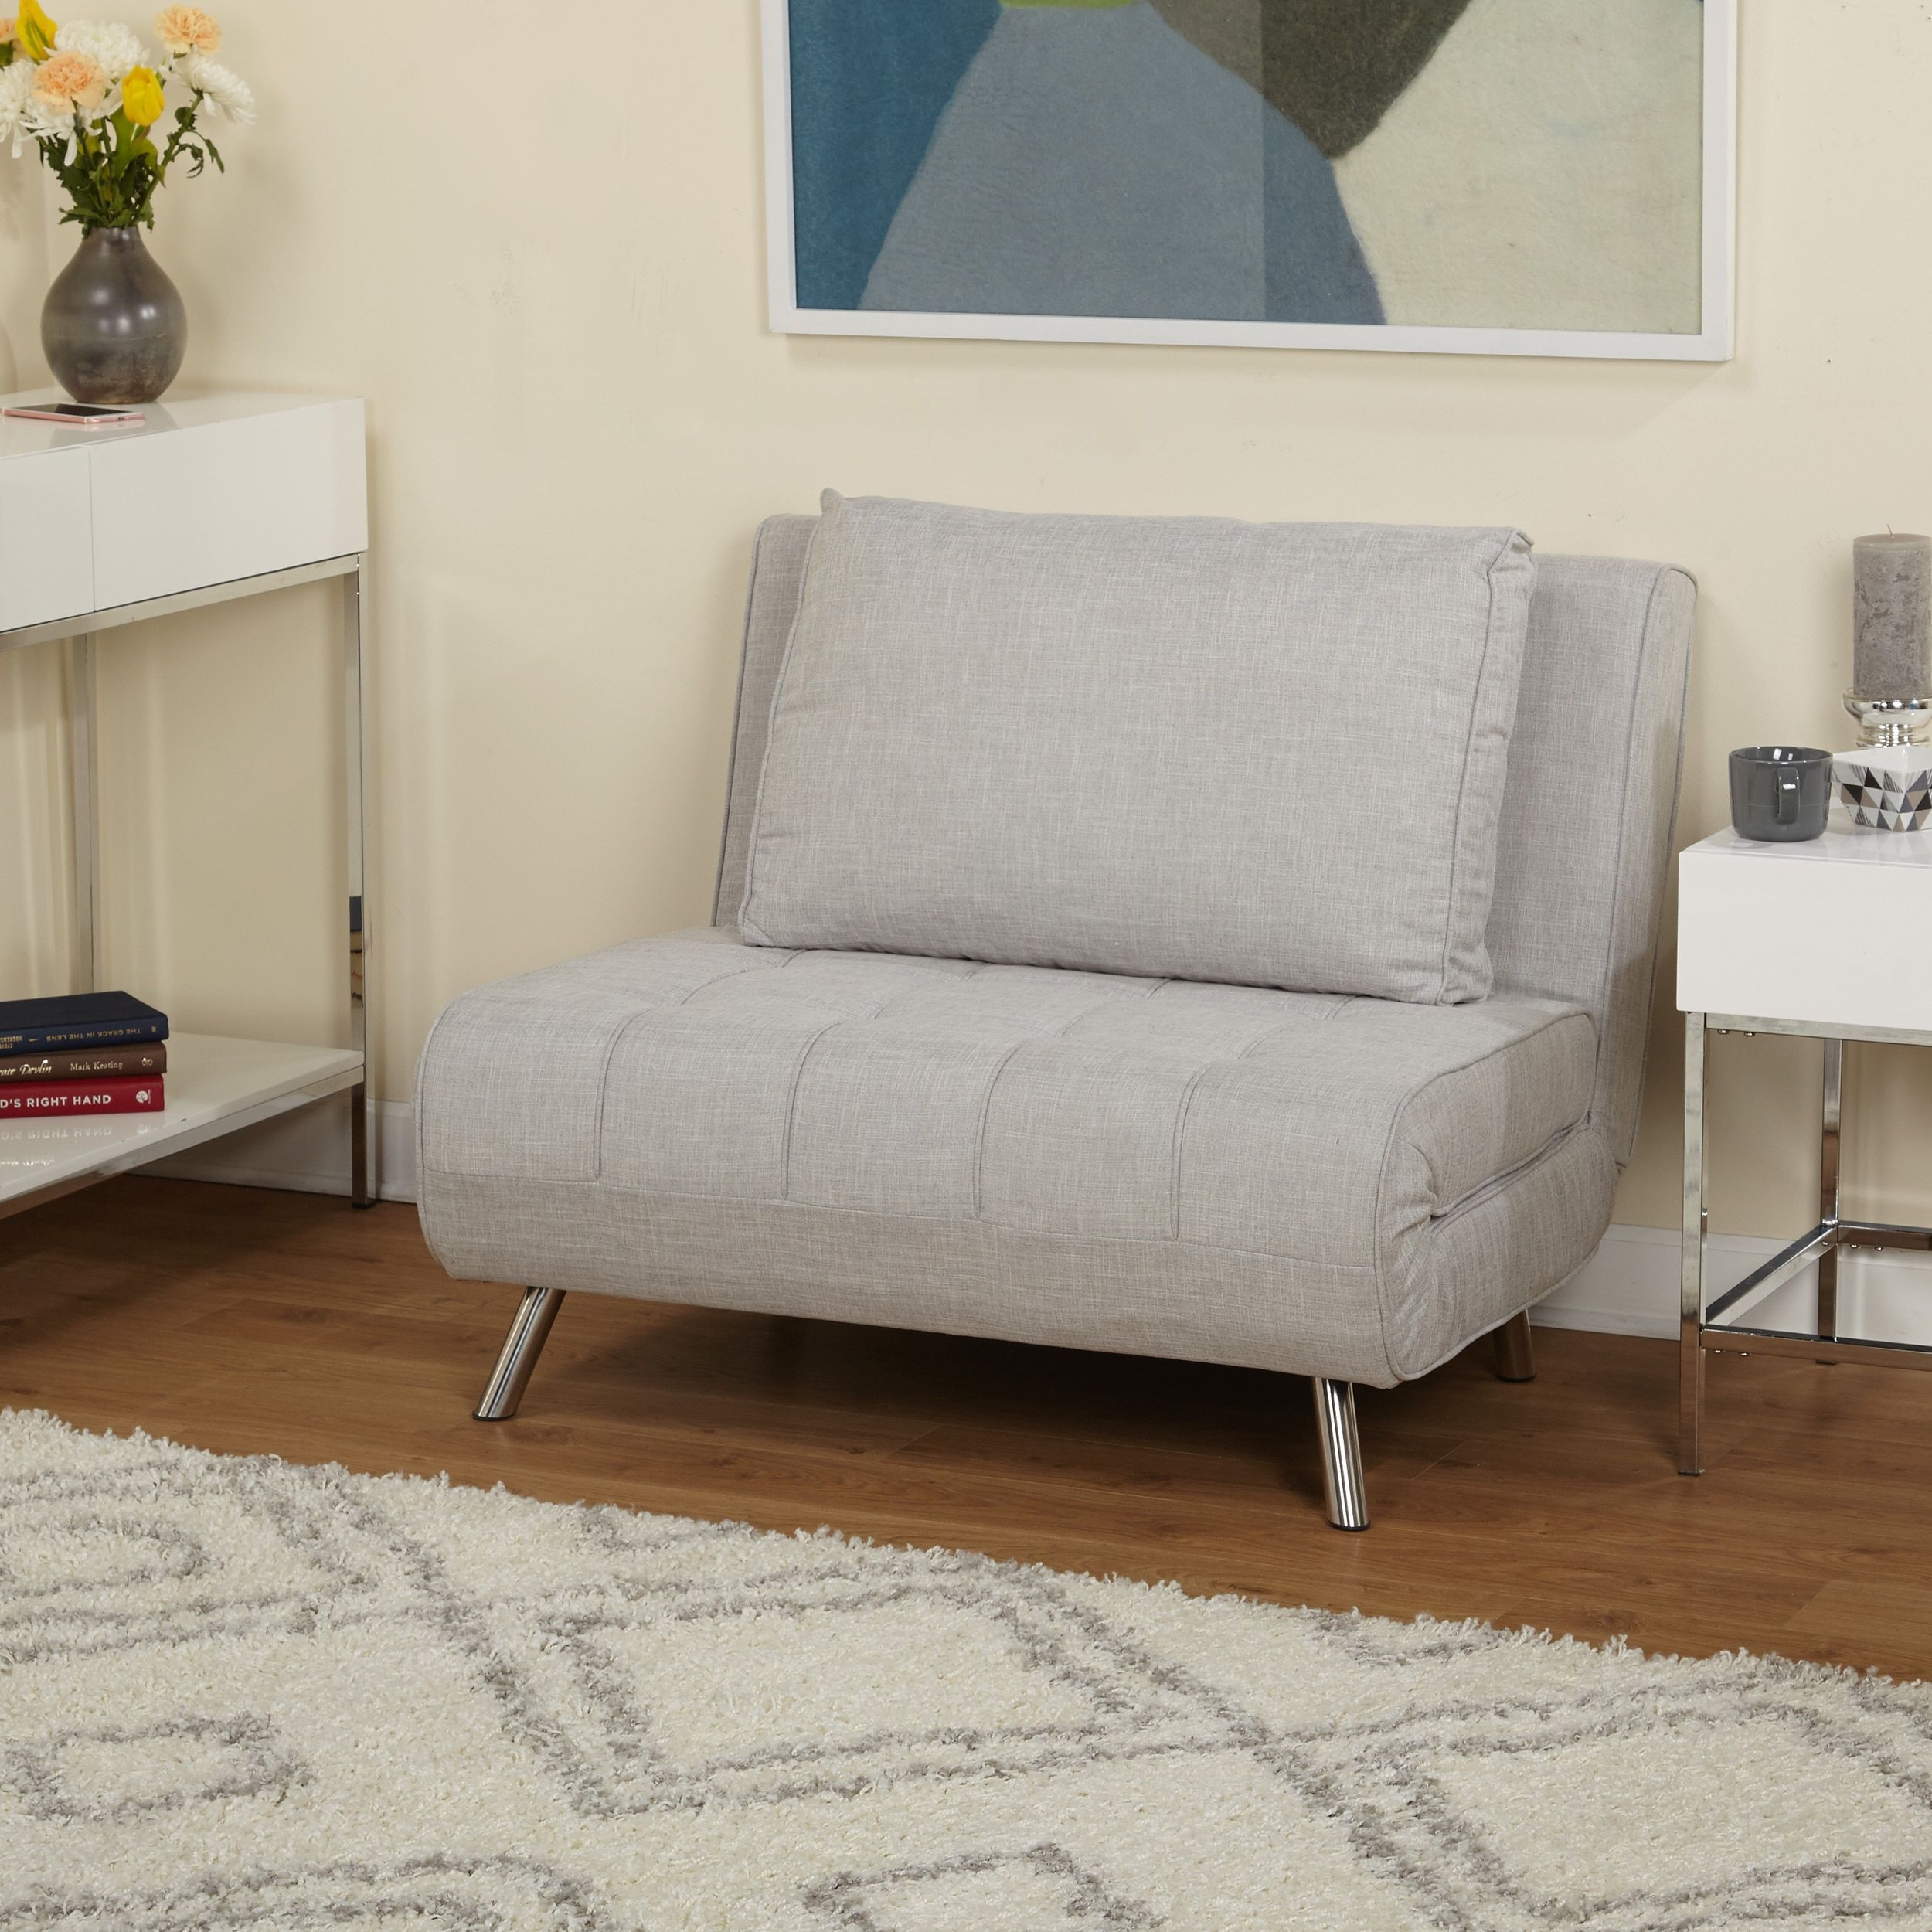 simple living victor futon chair bed futon chair bed grey